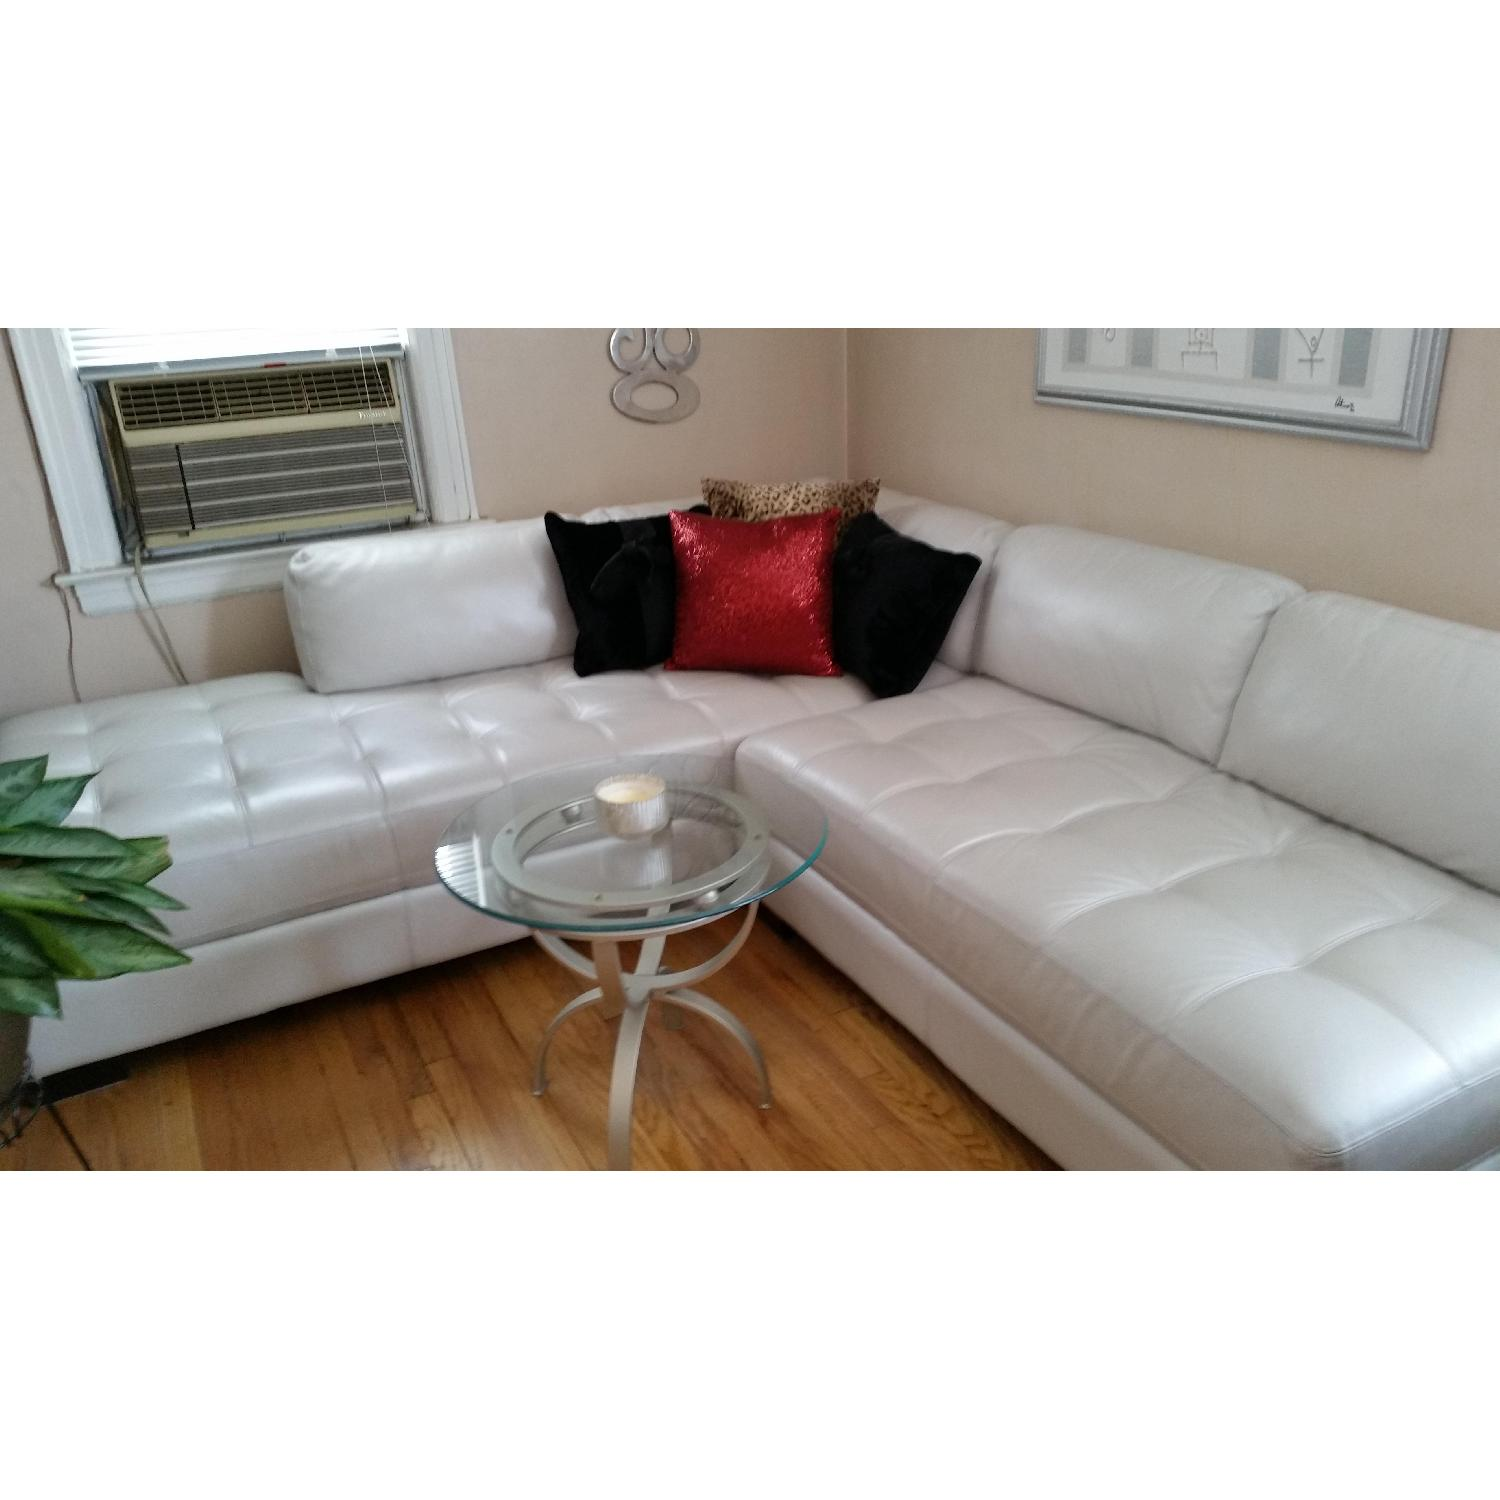 Chateau dAx Leather Sectional + Glass Table - image-4